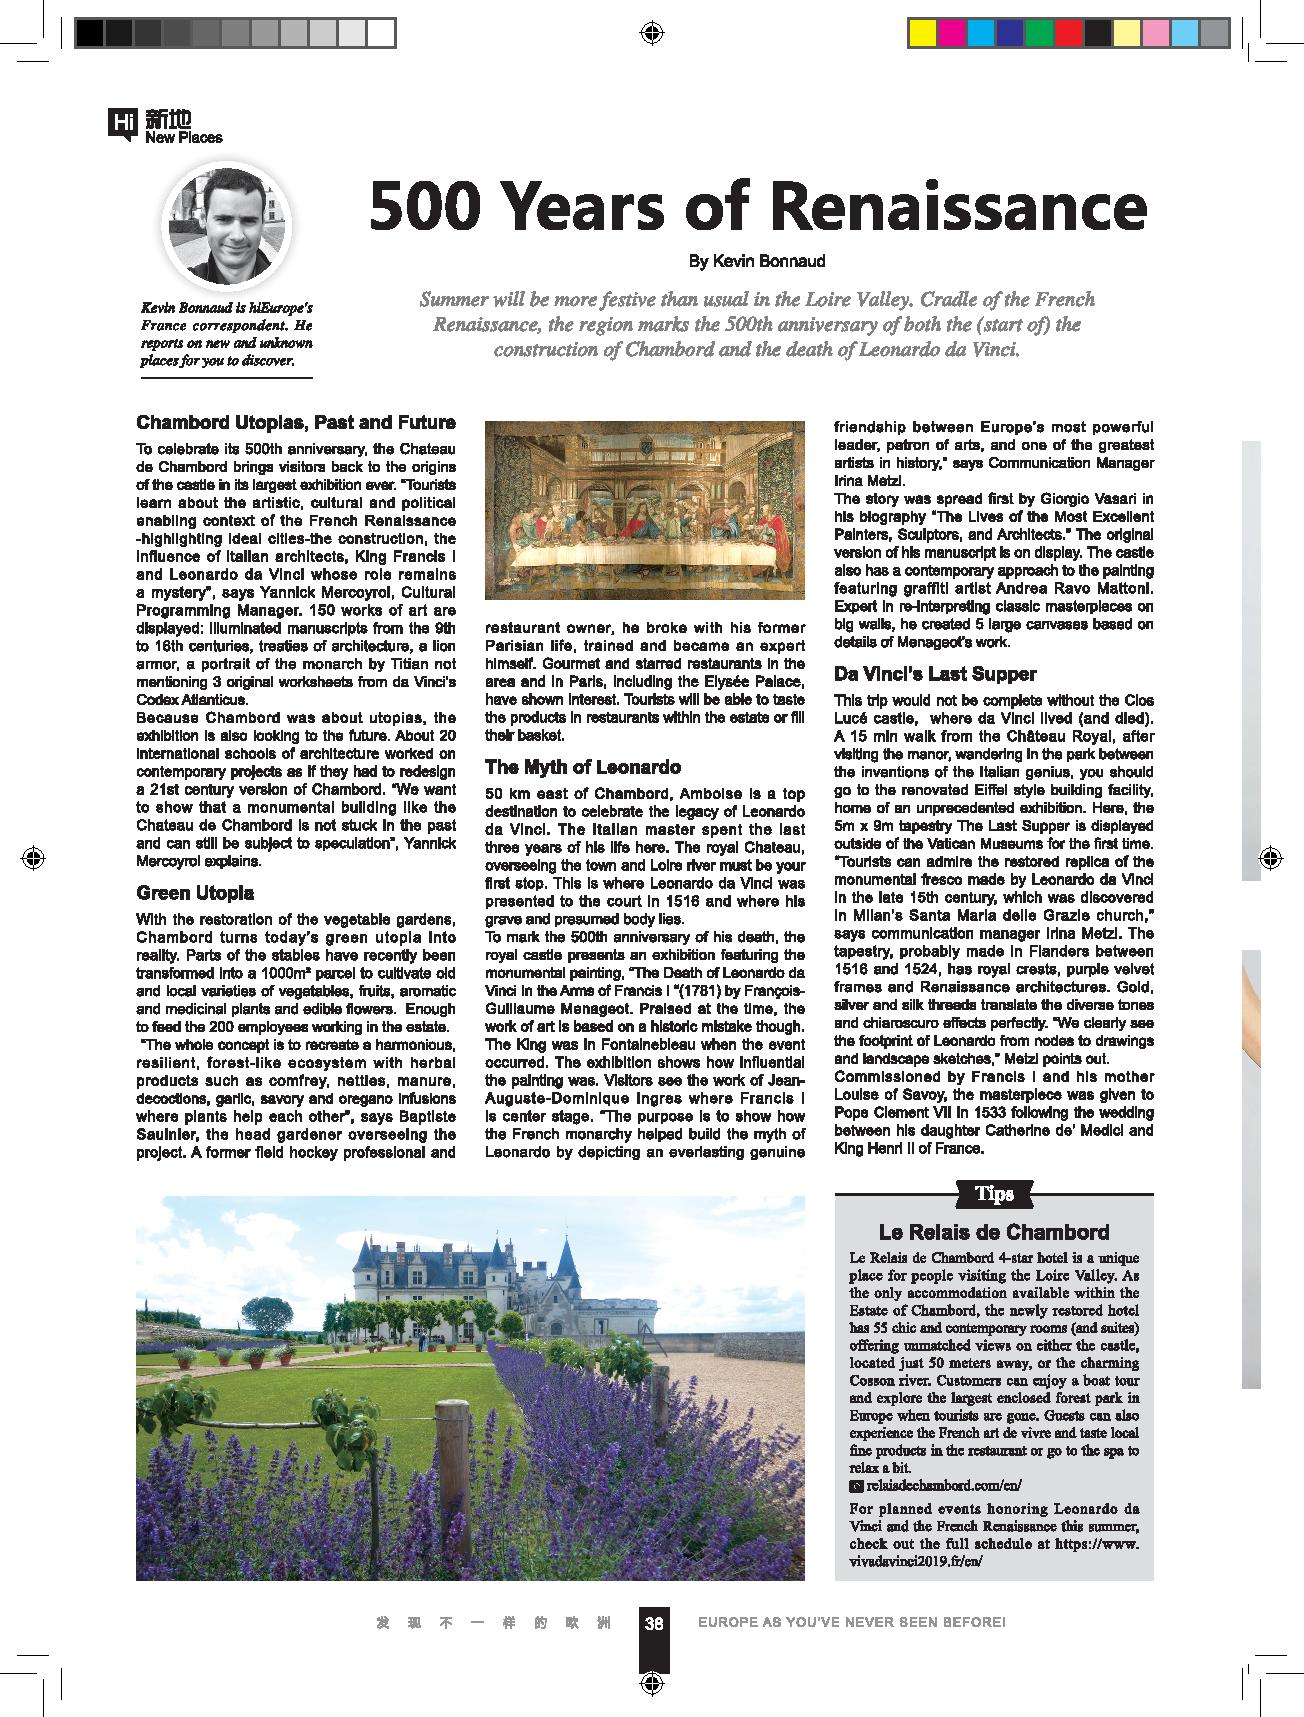 500 Years of Renaissance Issue 44 - Su